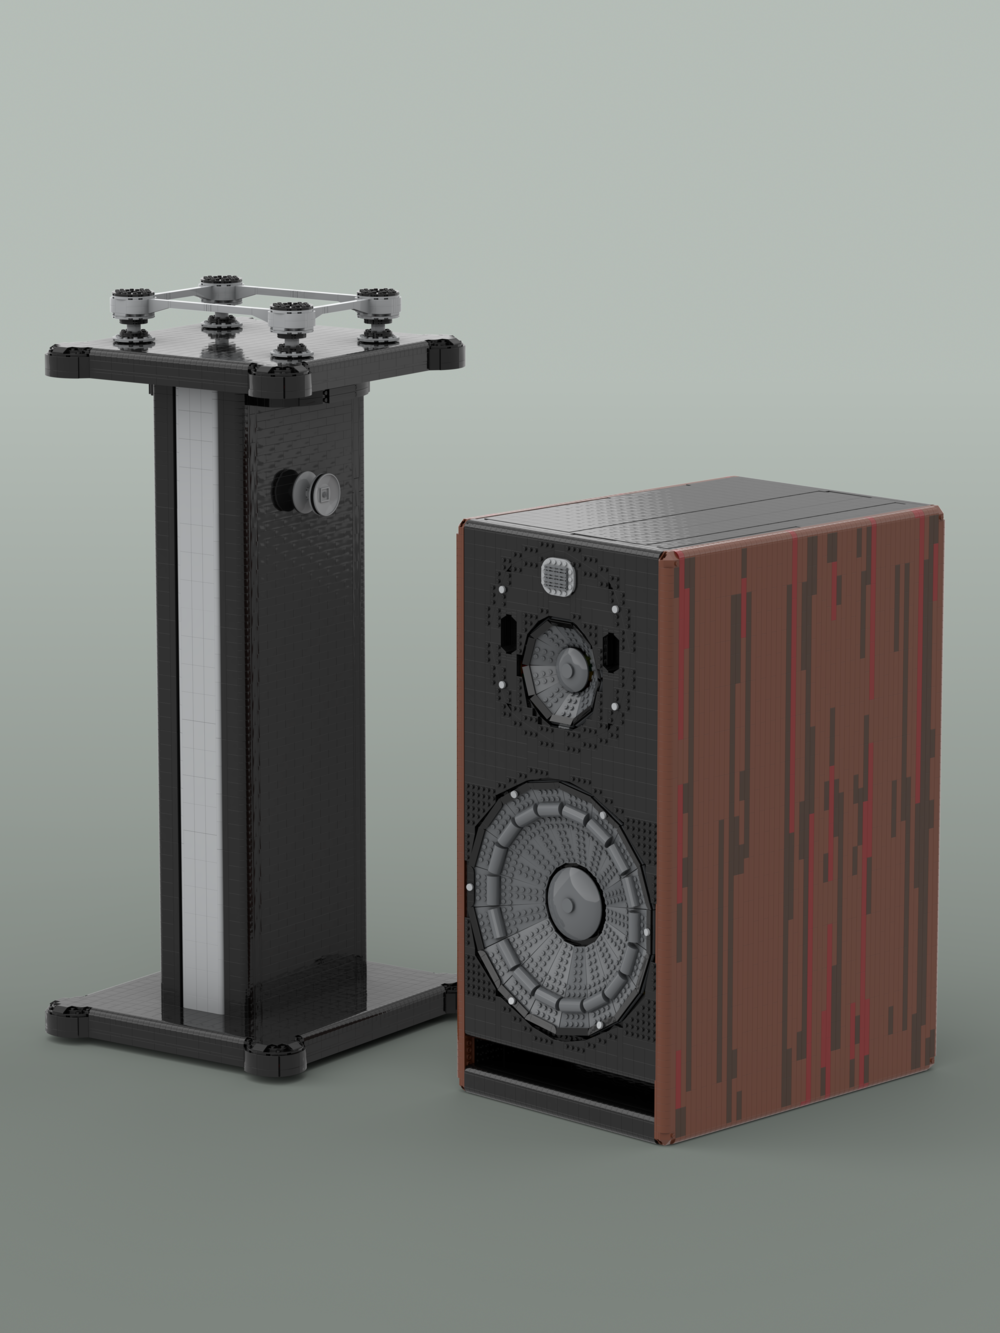 My finished designs for the Zaor Isostand MkII and the Focal Trio11 Speaker.